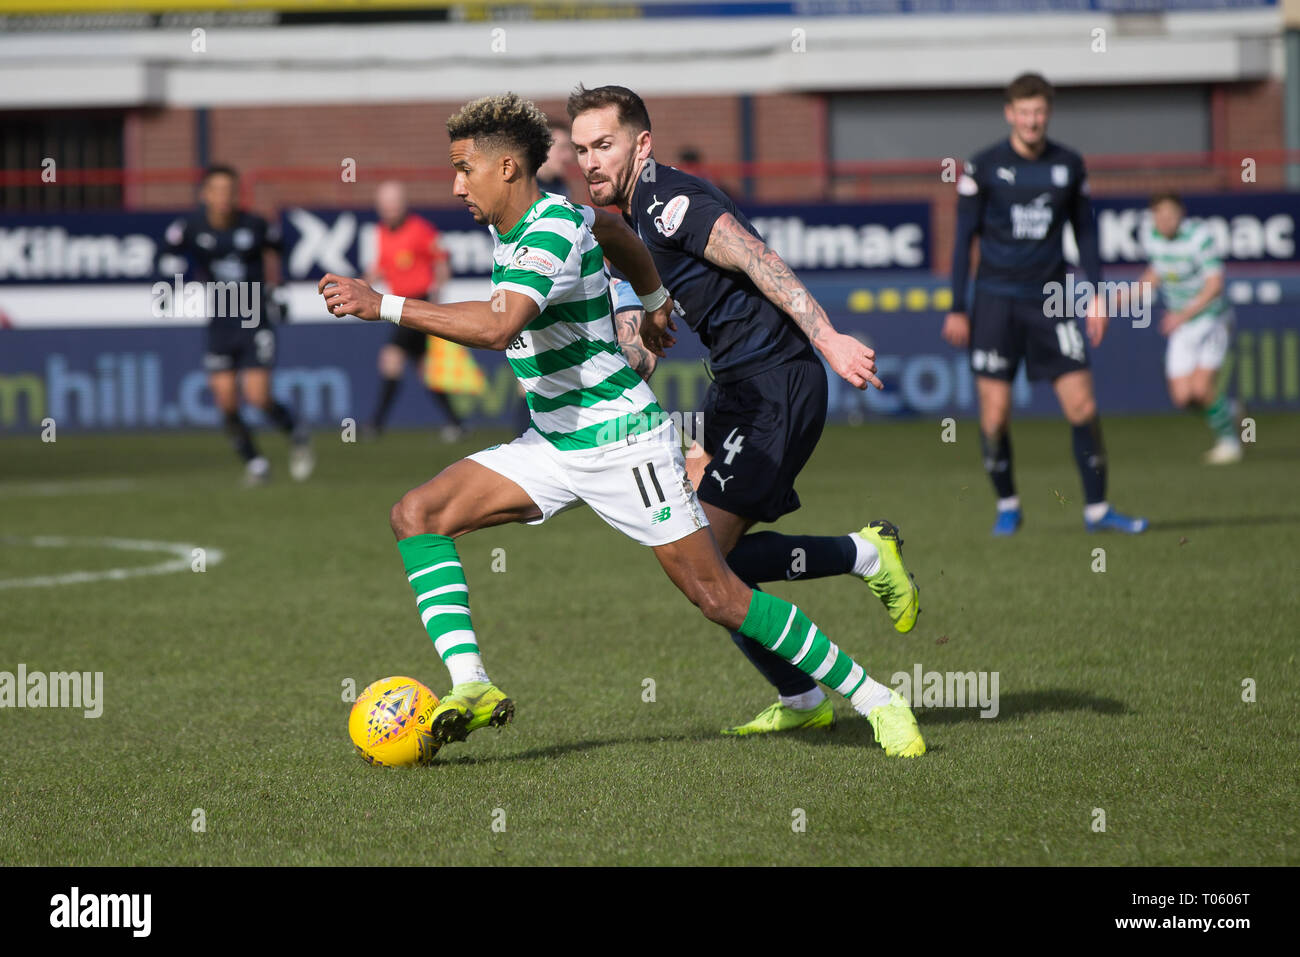 Dundee, UK. 17th Mar, 2019. Ladbrokes Premiership football, Dundee versus Celtic; Scott Sinclair of Celtic goes past Martin Woods of Dundee Credit: Action Plus Sports/Alamy Live News - Stock Image